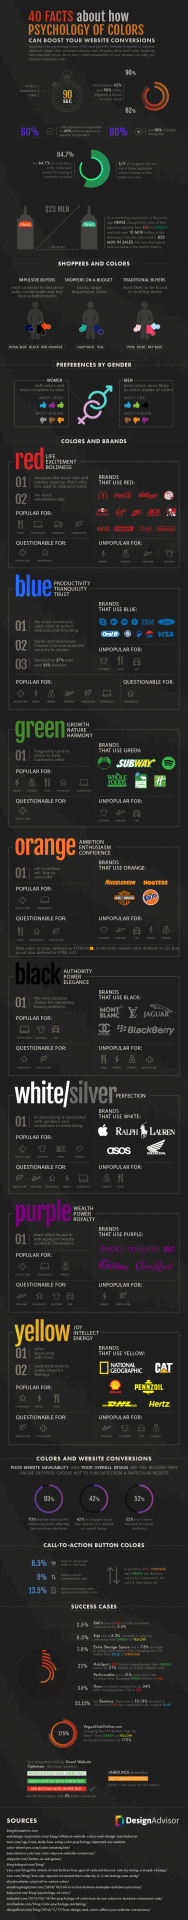 How Colors Can Boost Website Conversions [INFOGRAPHIC] - 1st on the List